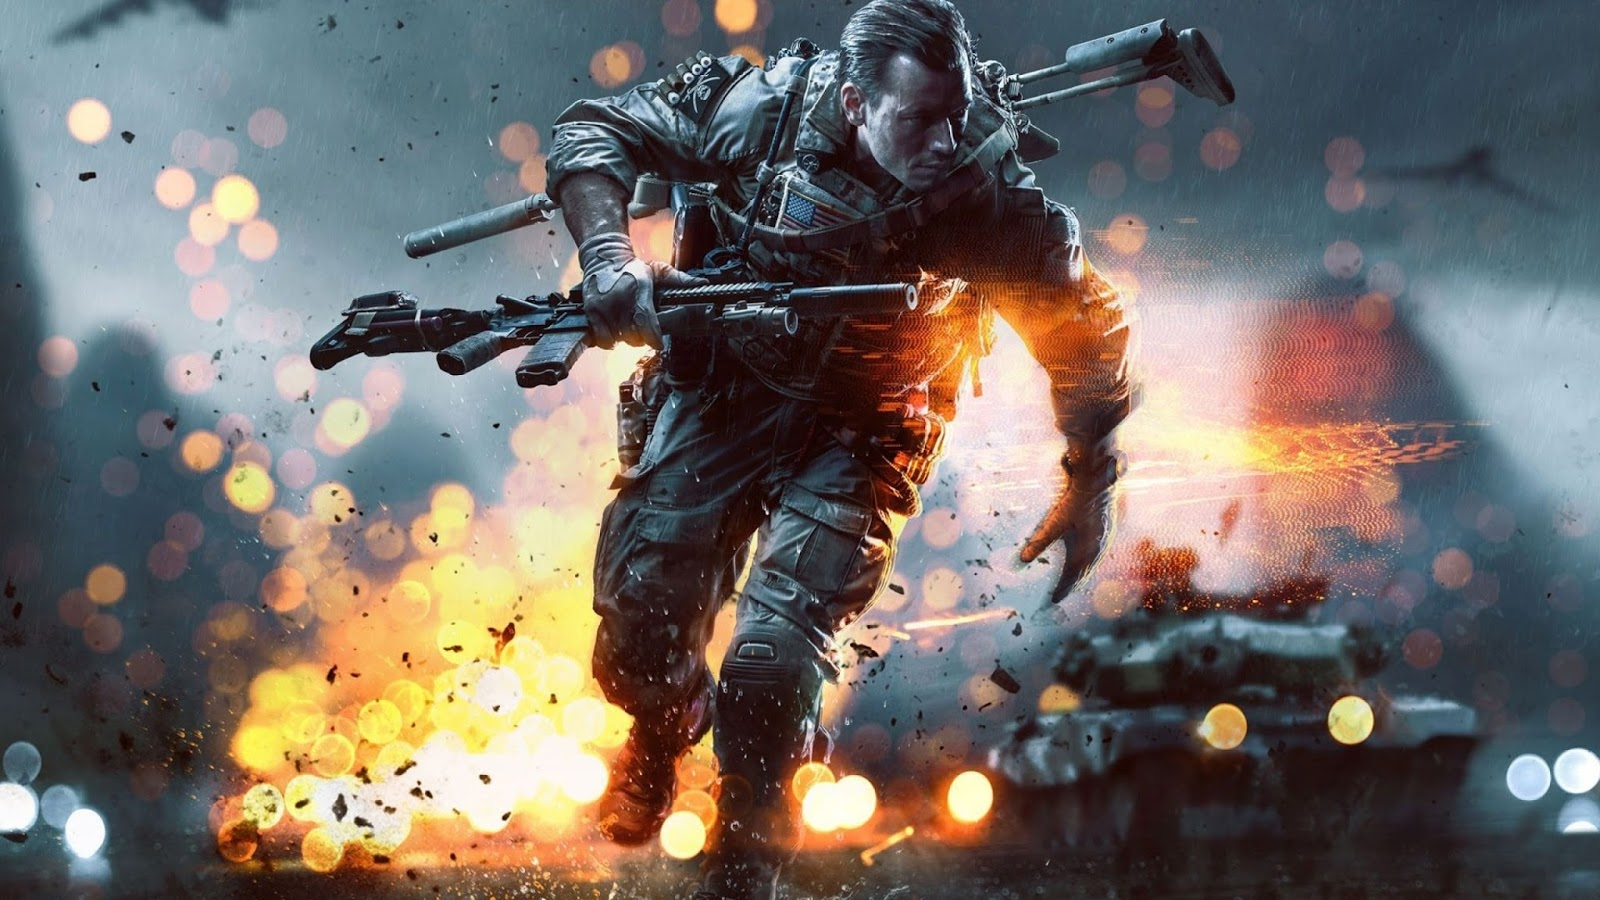 Cool Gaming Hd Wallpapers 1080p Games wallpapers collection hd 1600x900